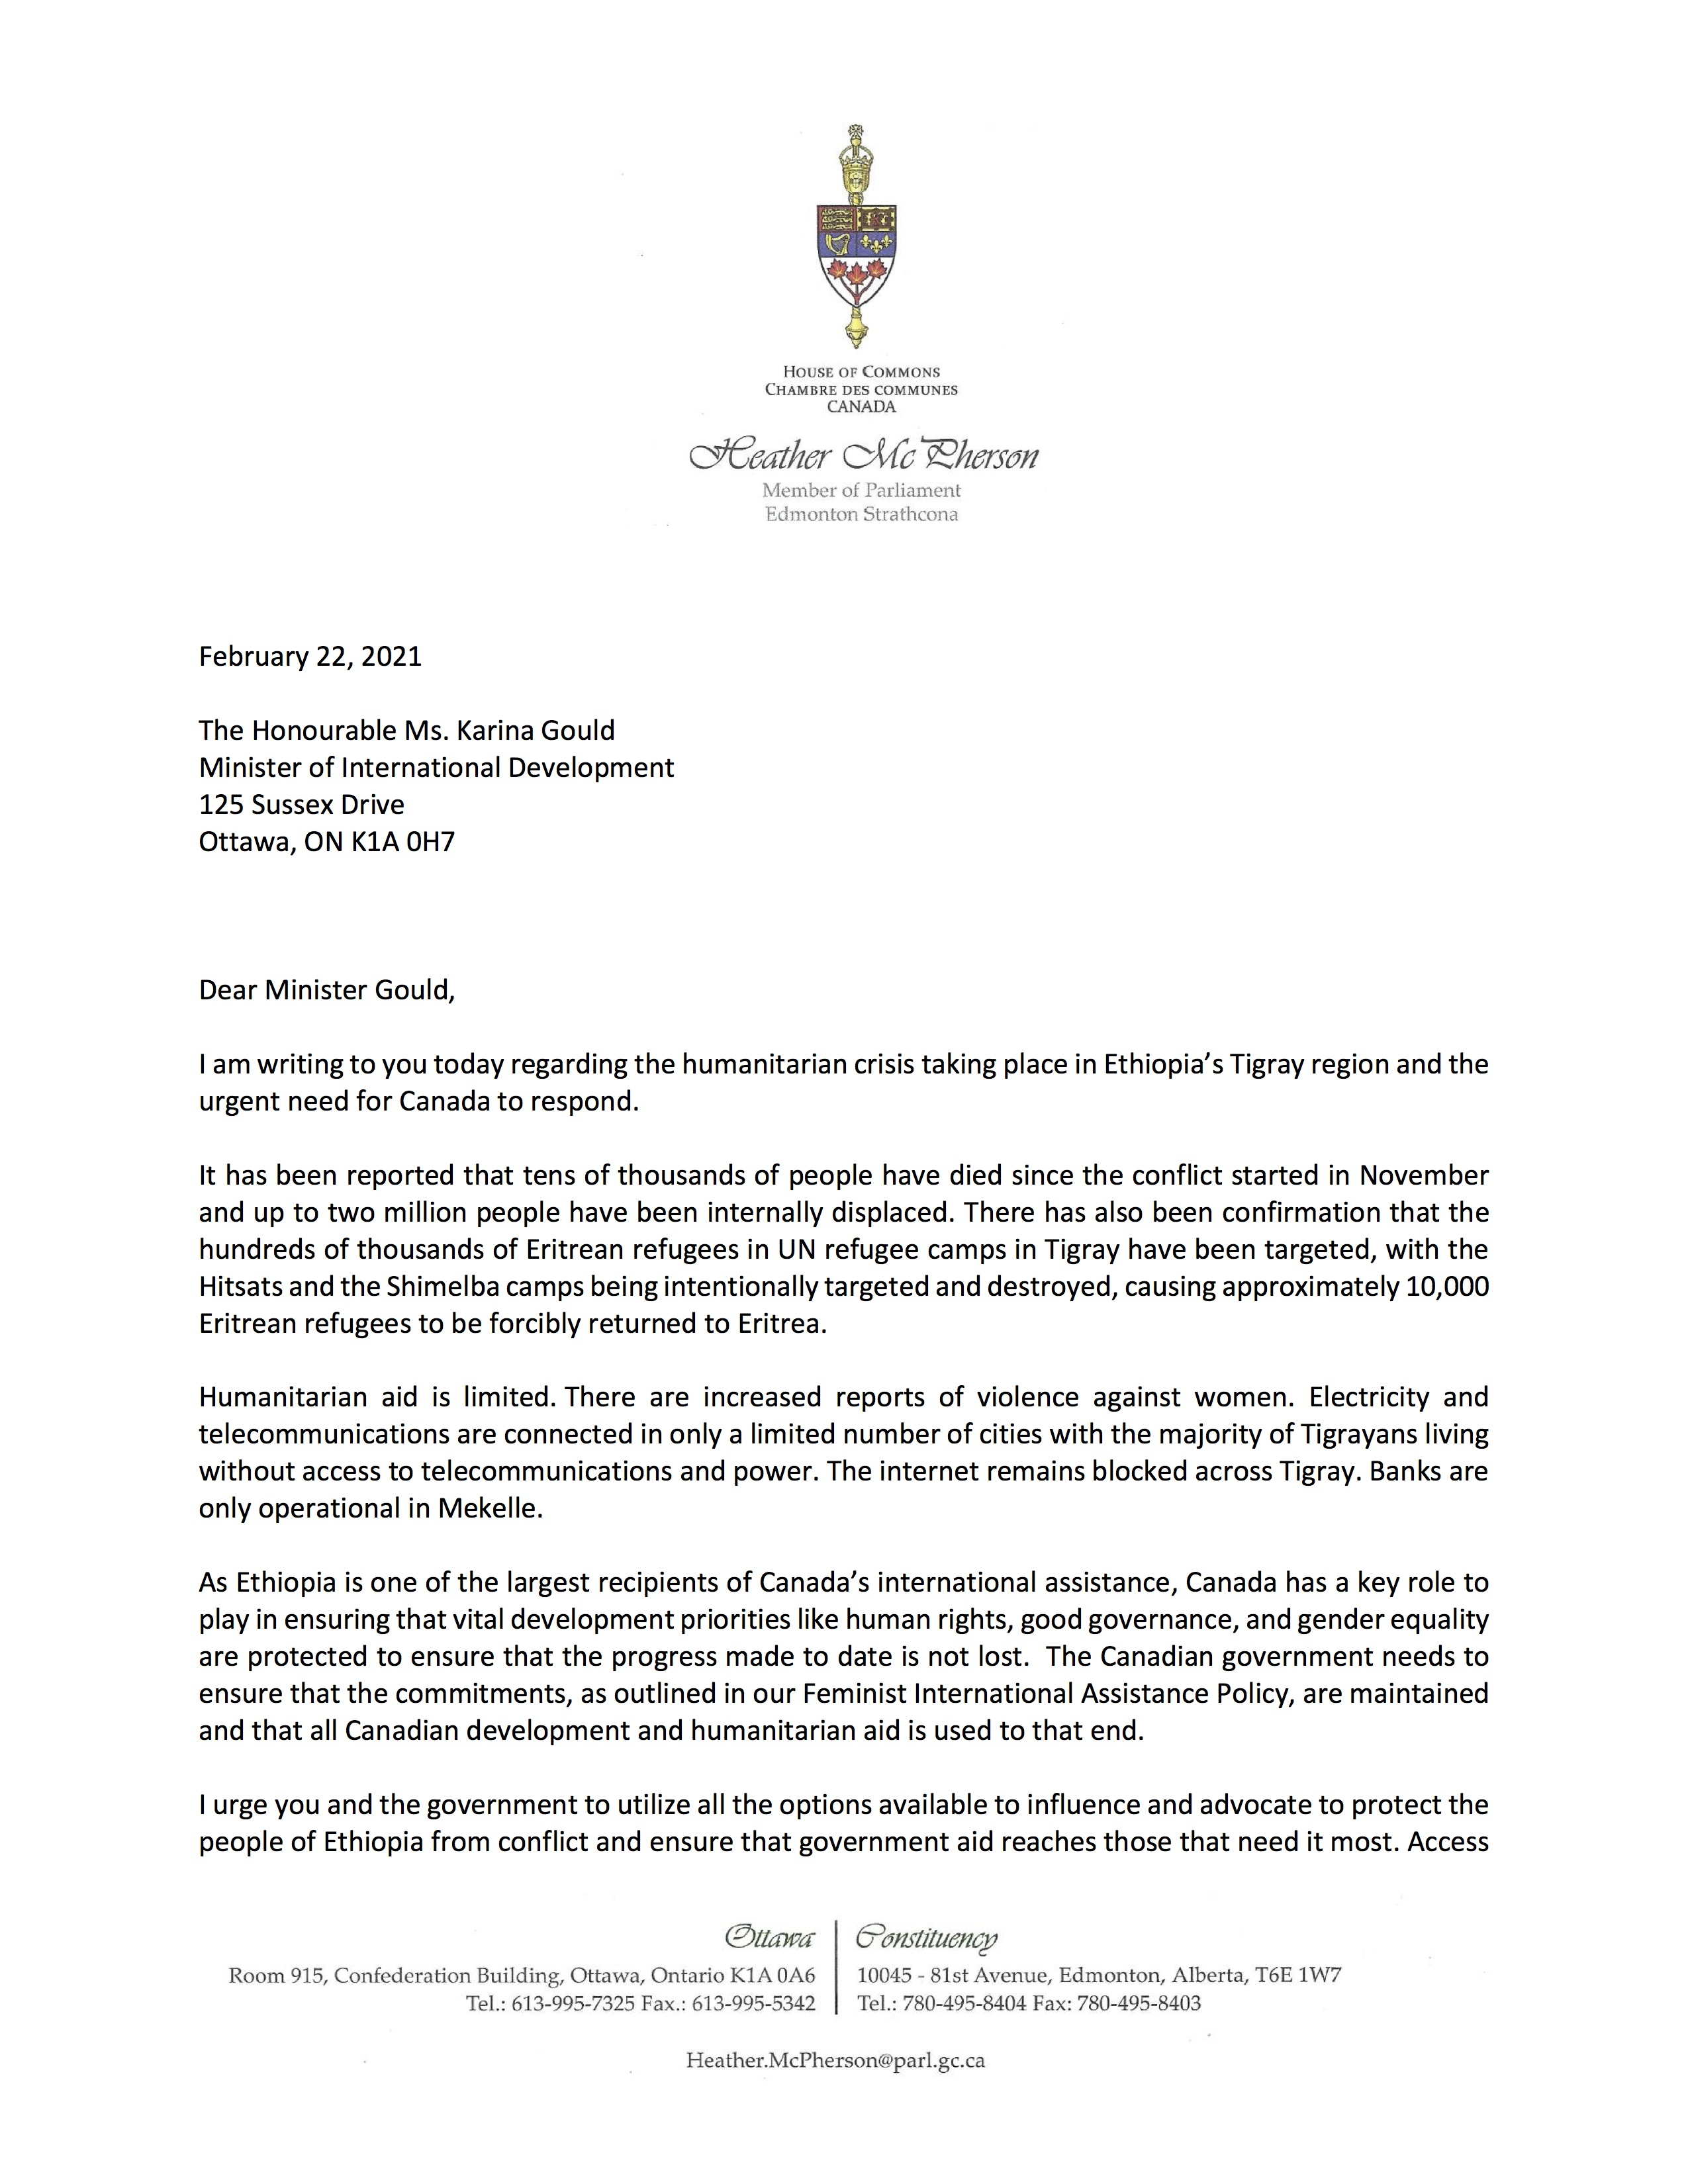 Letter to Minister Gould Page 1